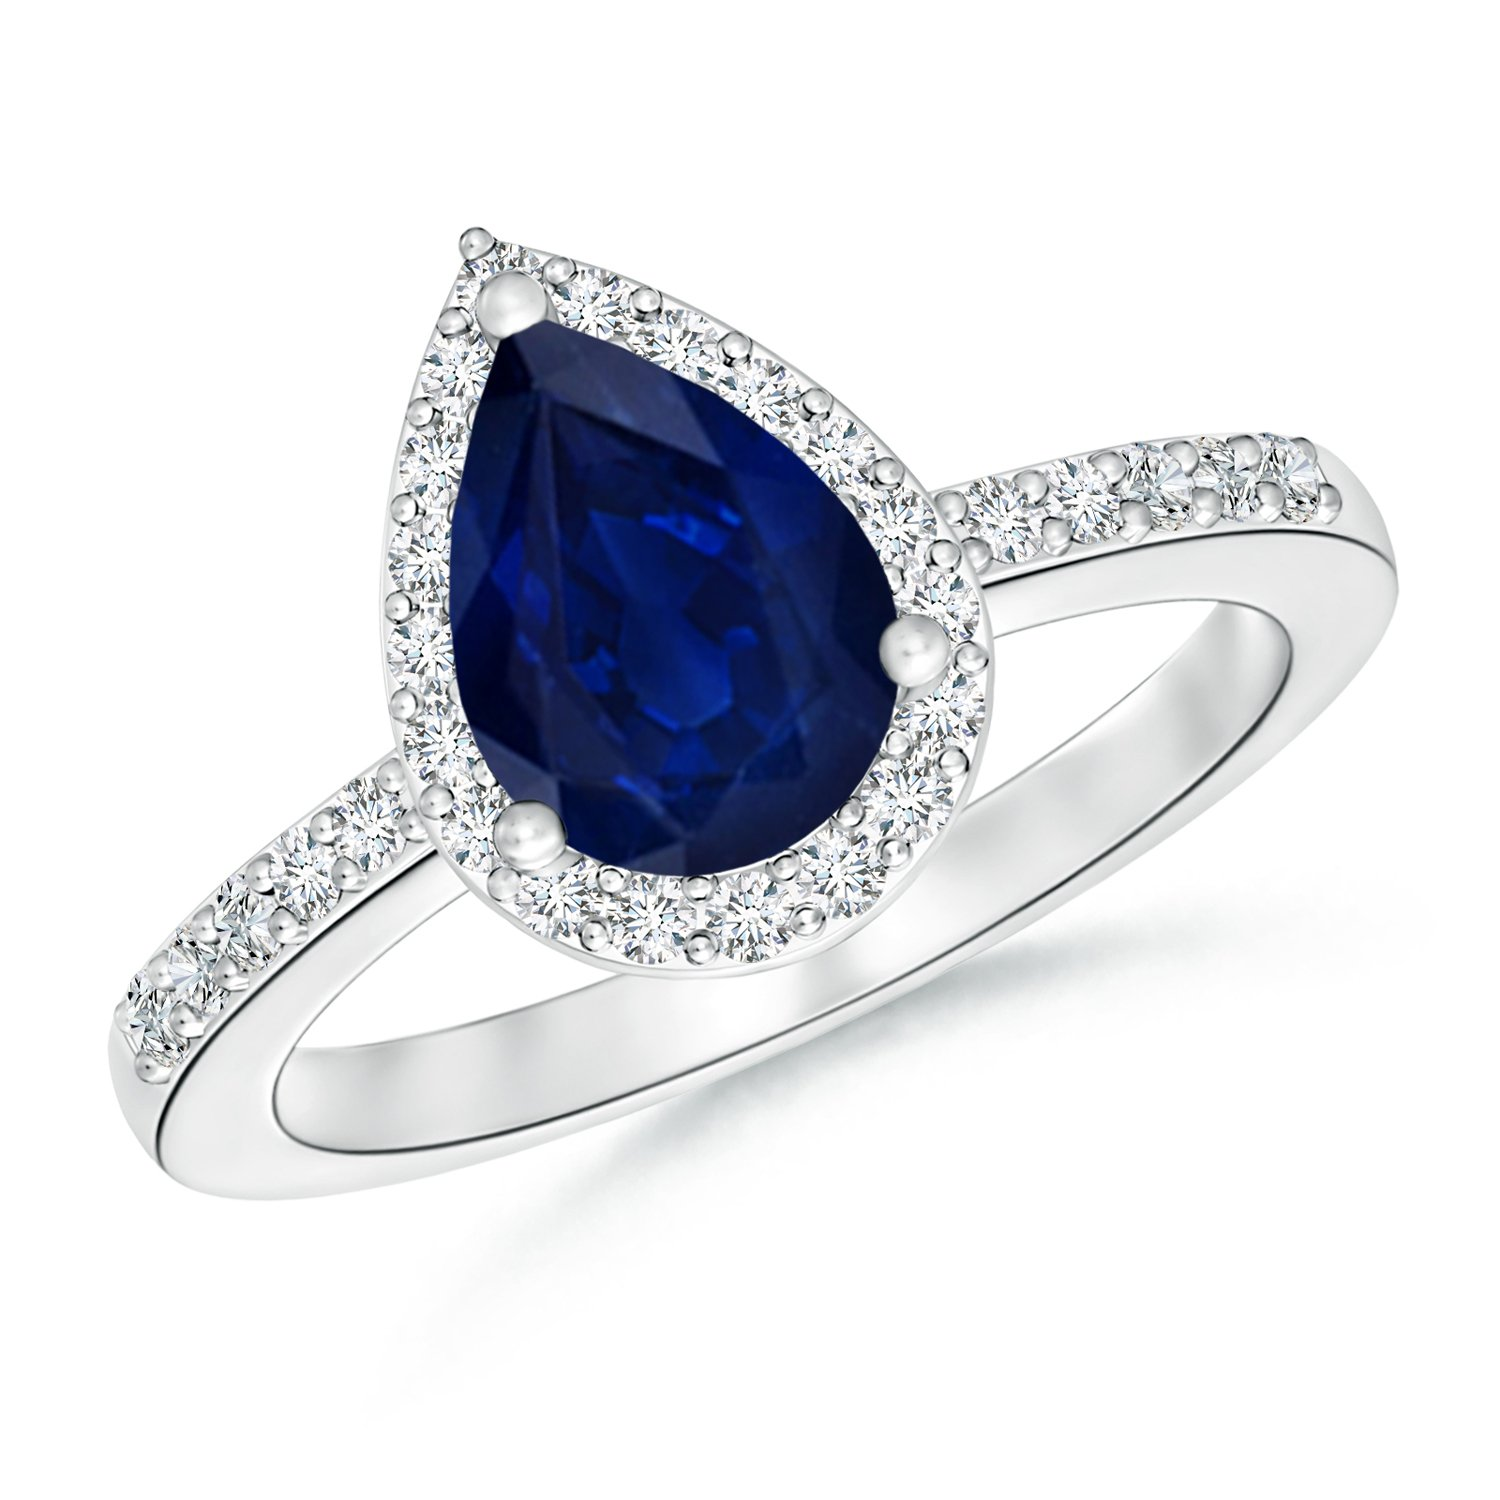 Pear Shaped Sapphire Engagement Ring with Diamond Halo in 14K White Gold (9x6mm Blue Sapphire)